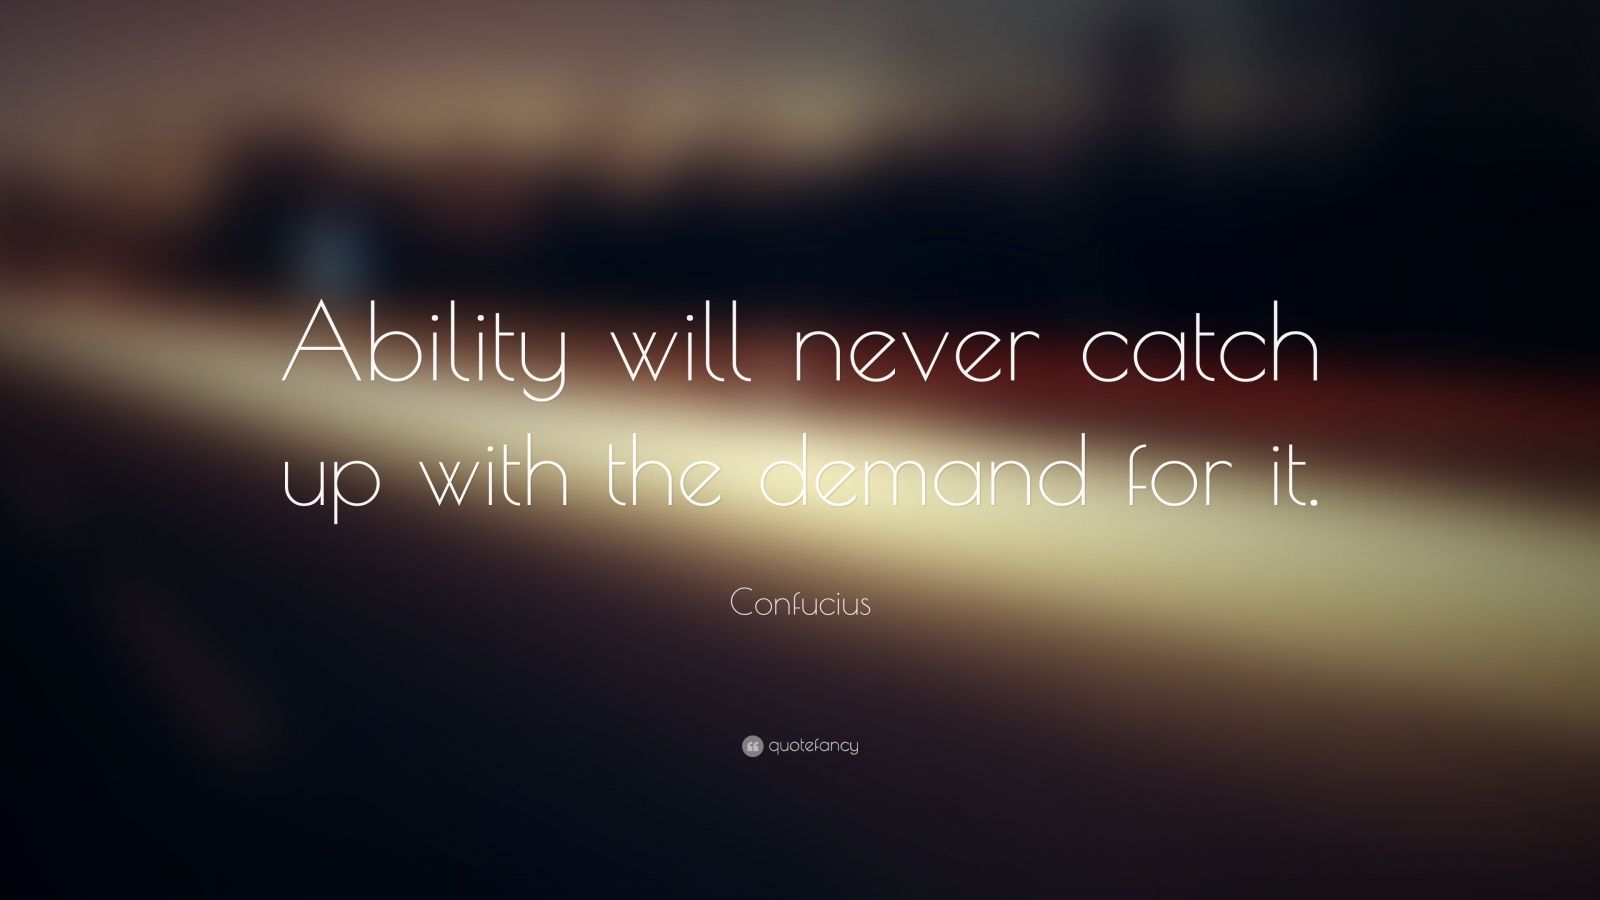 Beautiful Wallpapers With Inspirational Quotes Confucius Quotes 100 Wallpapers Quotefancy